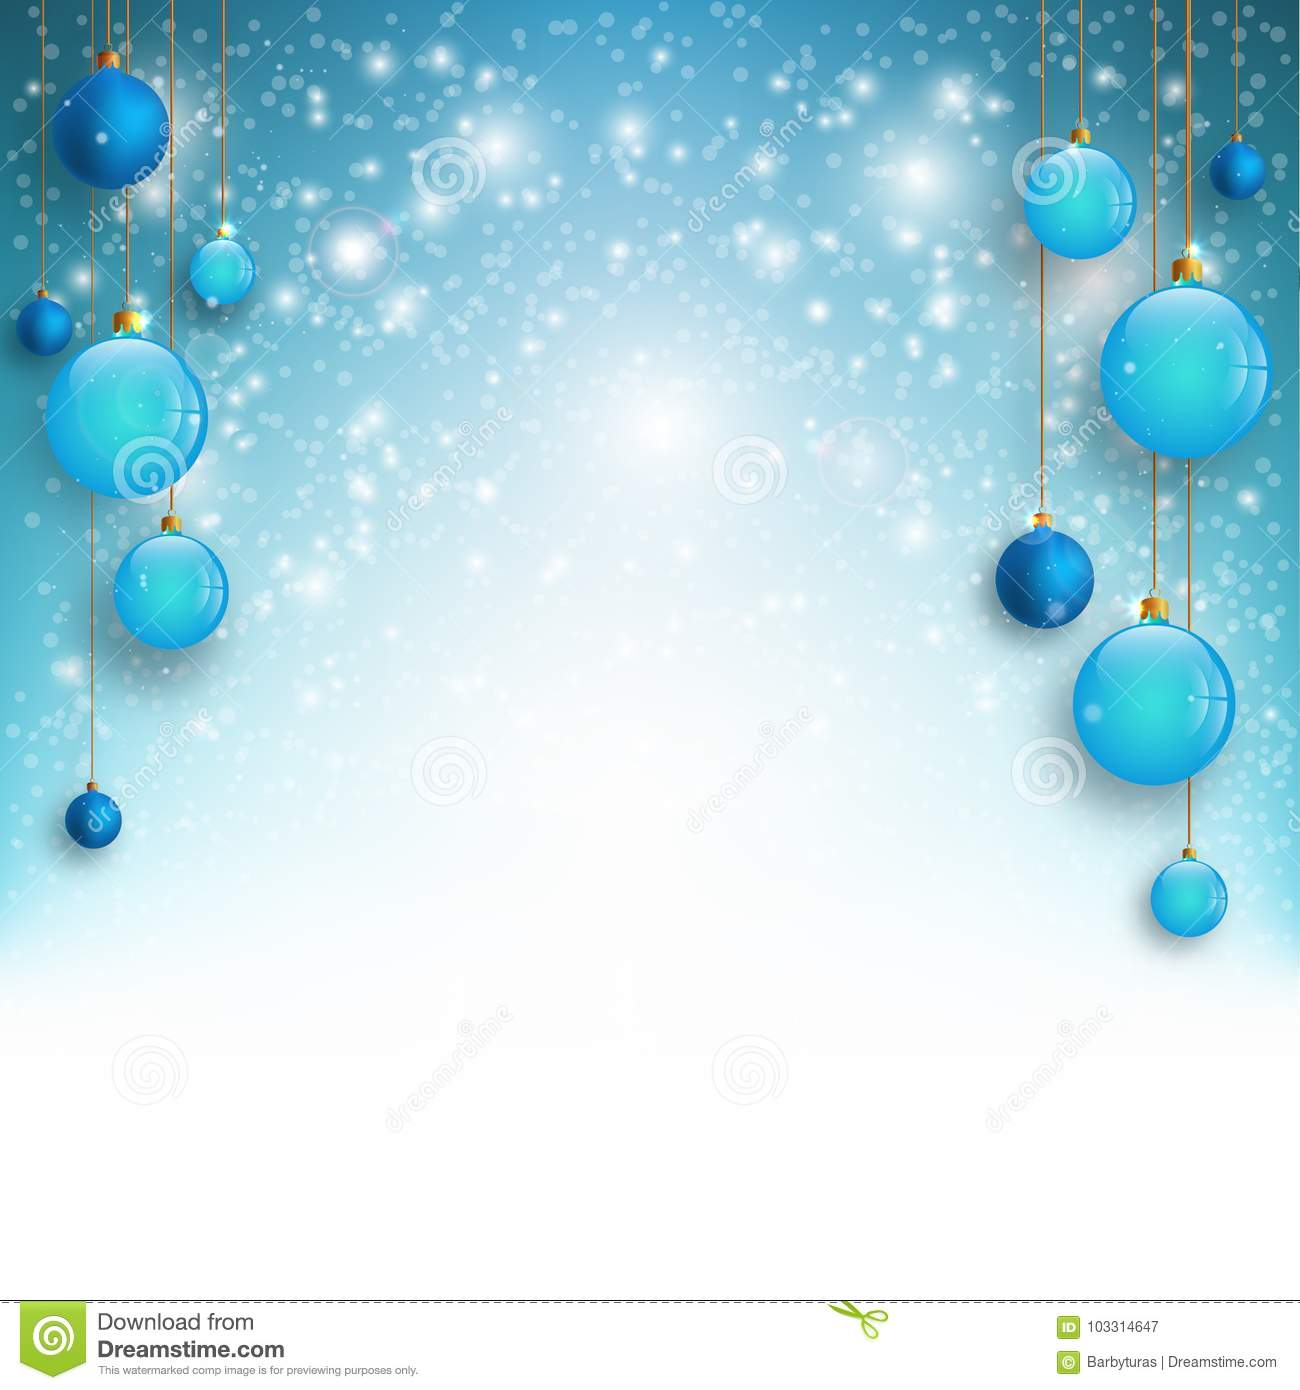 christmas background with blue christmas balls and snow for xmas design vector illustration stock illustration illustration of present elegant 103314647 https www dreamstime com christmas background blue christmas balls snow xmas design vector illustration christmas background blue image103314647